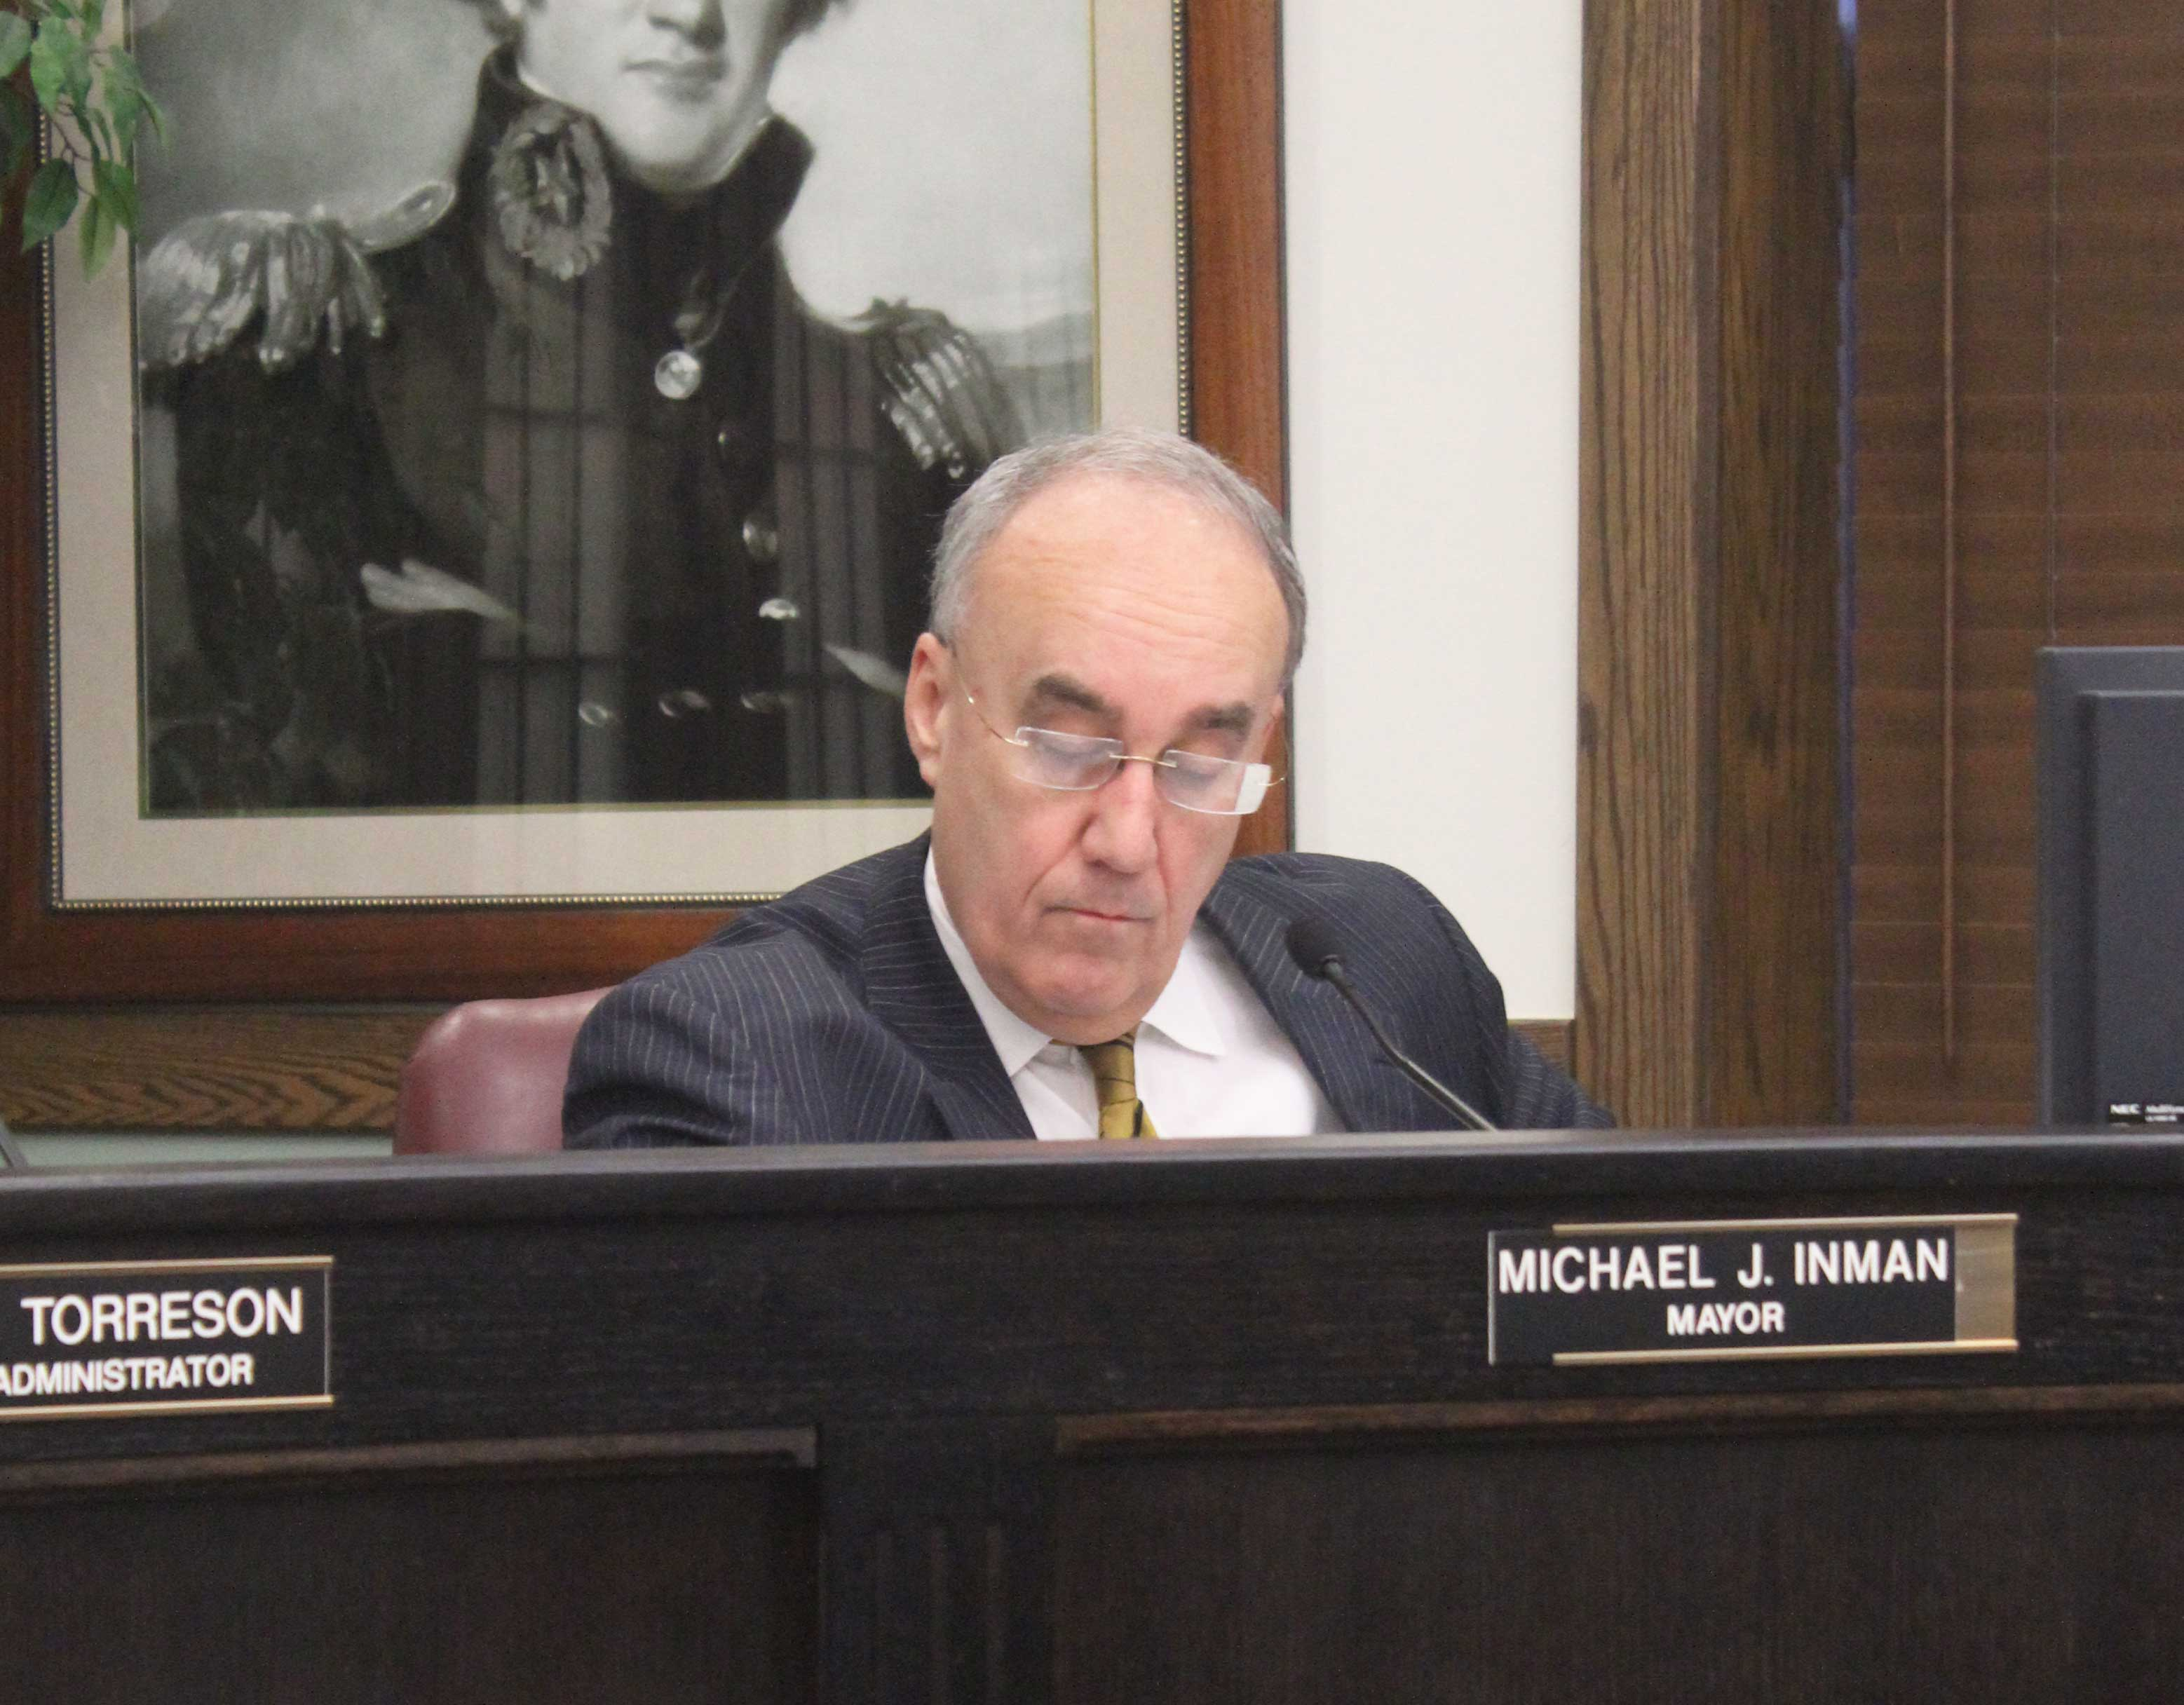 Mayor Mike Inman discusses the upcoming fiscal year at the Macomb City Council meeting on Monday night at City Hall.